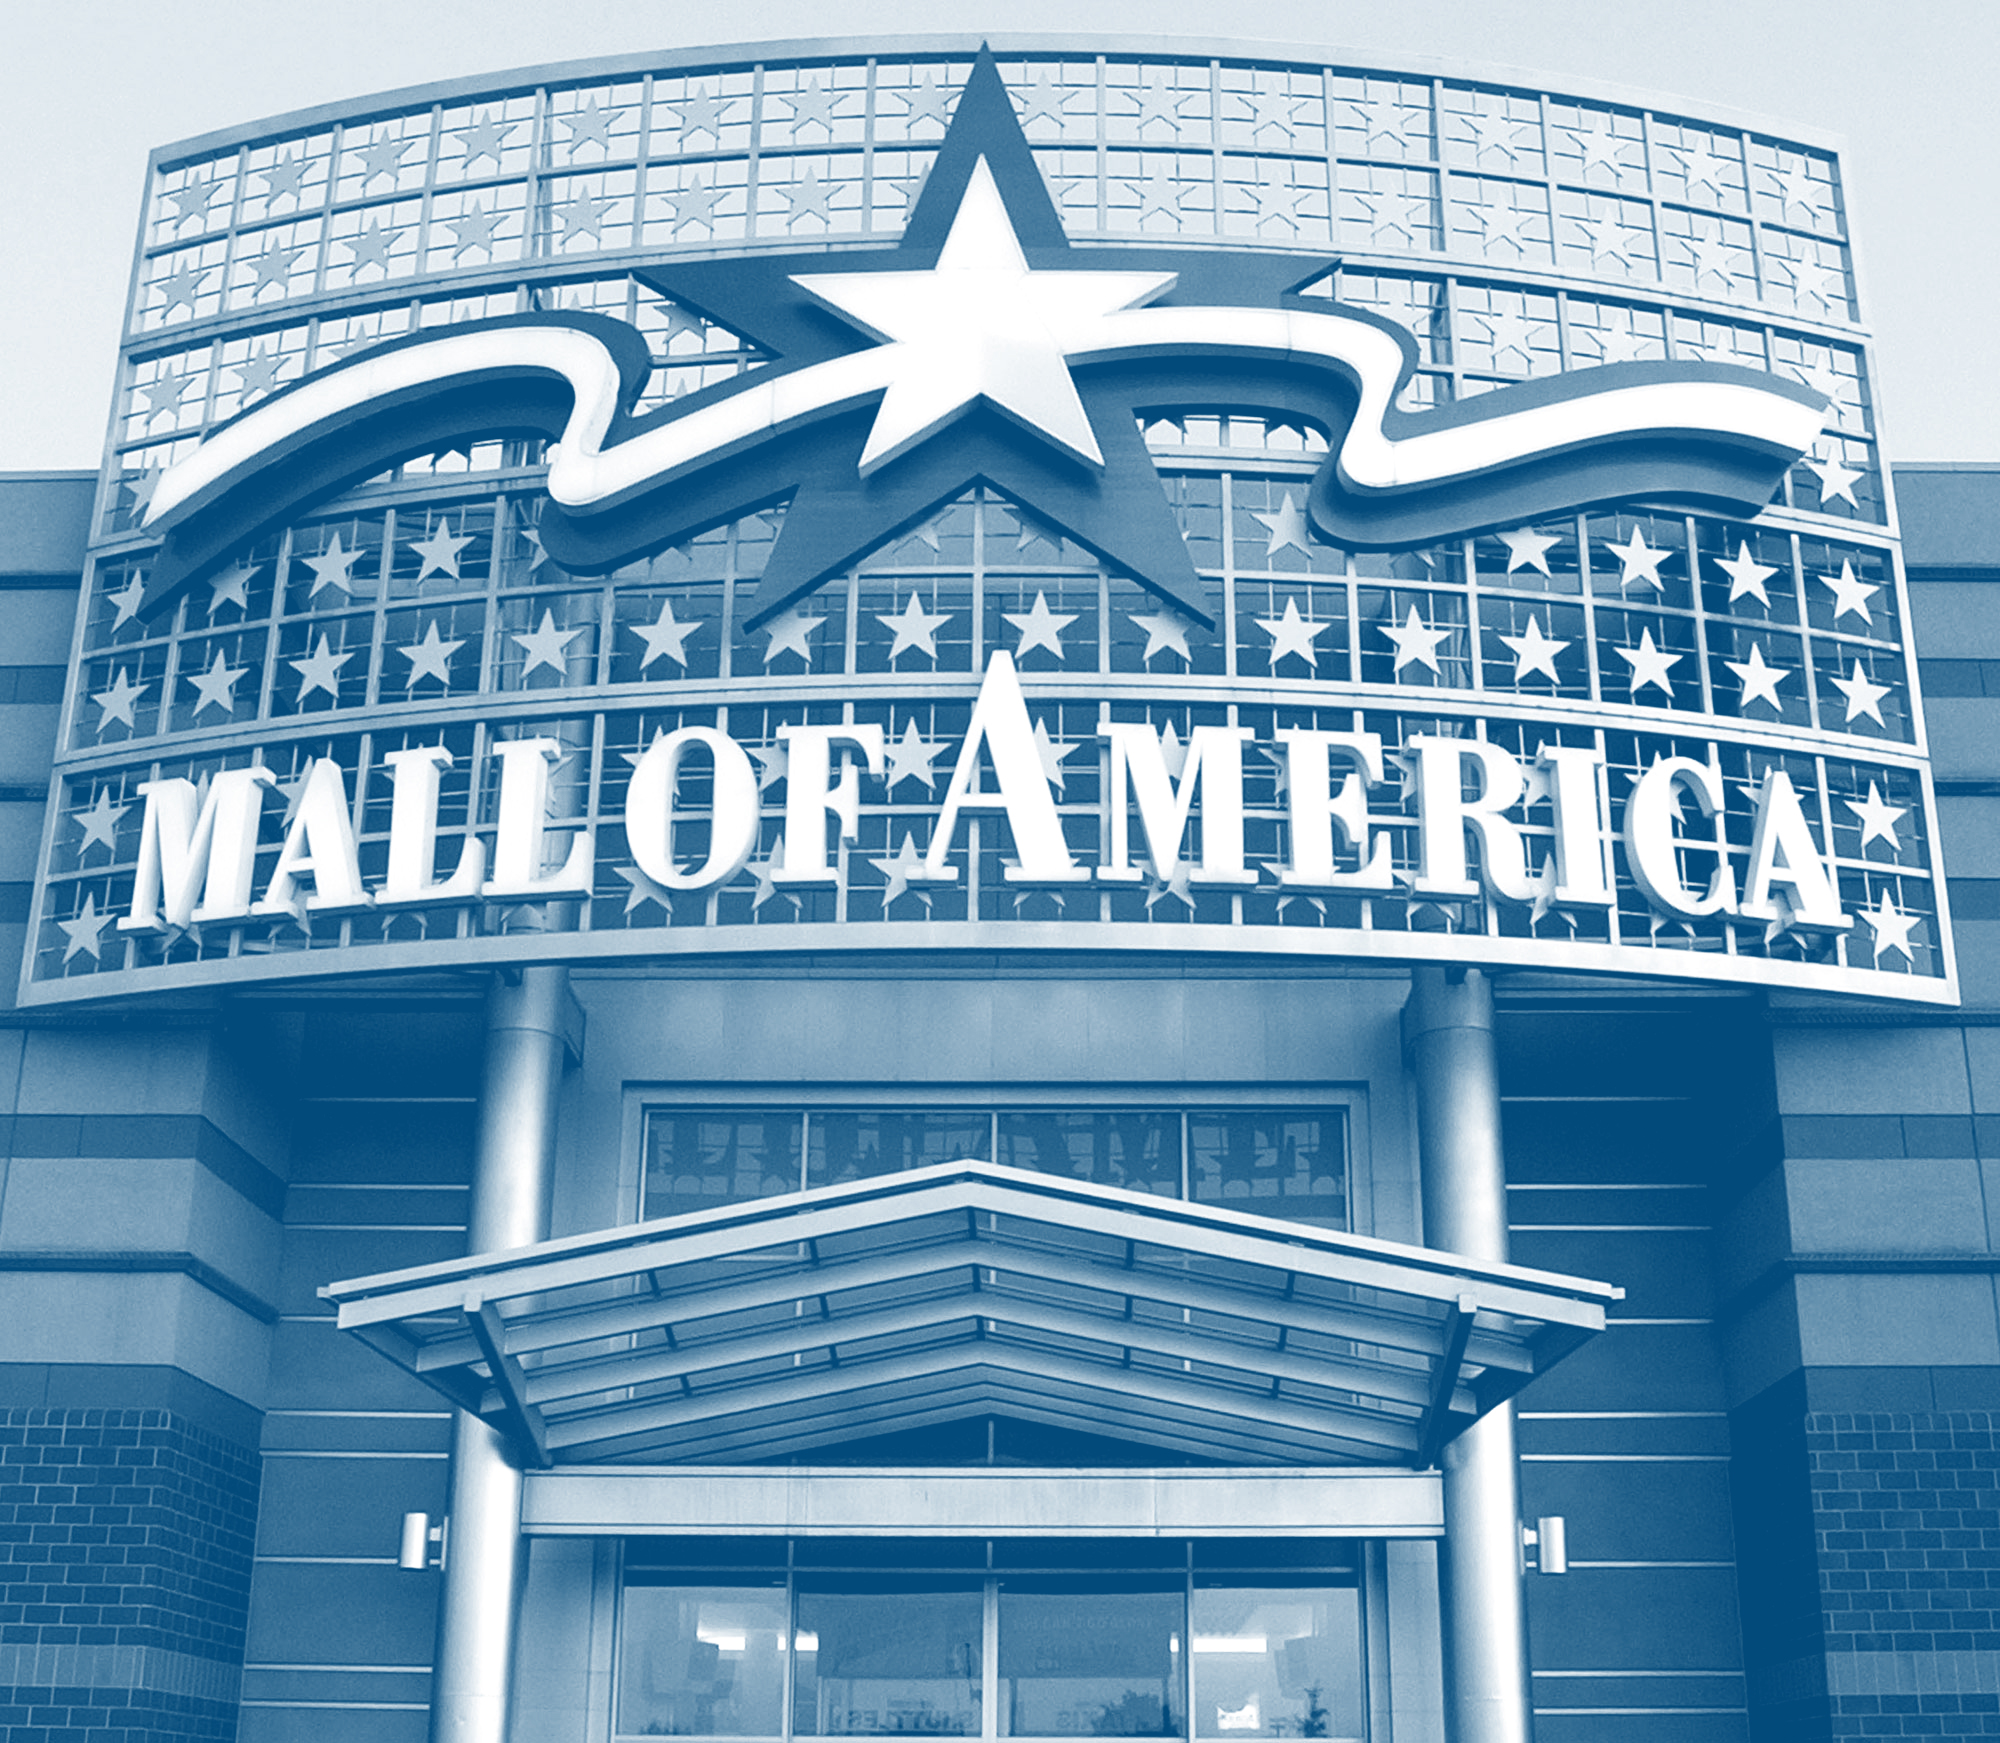 5-Year-Old Boy Who Was Thrown Off Mall of America Balcony Is 'Continuing to Fight' for His Life